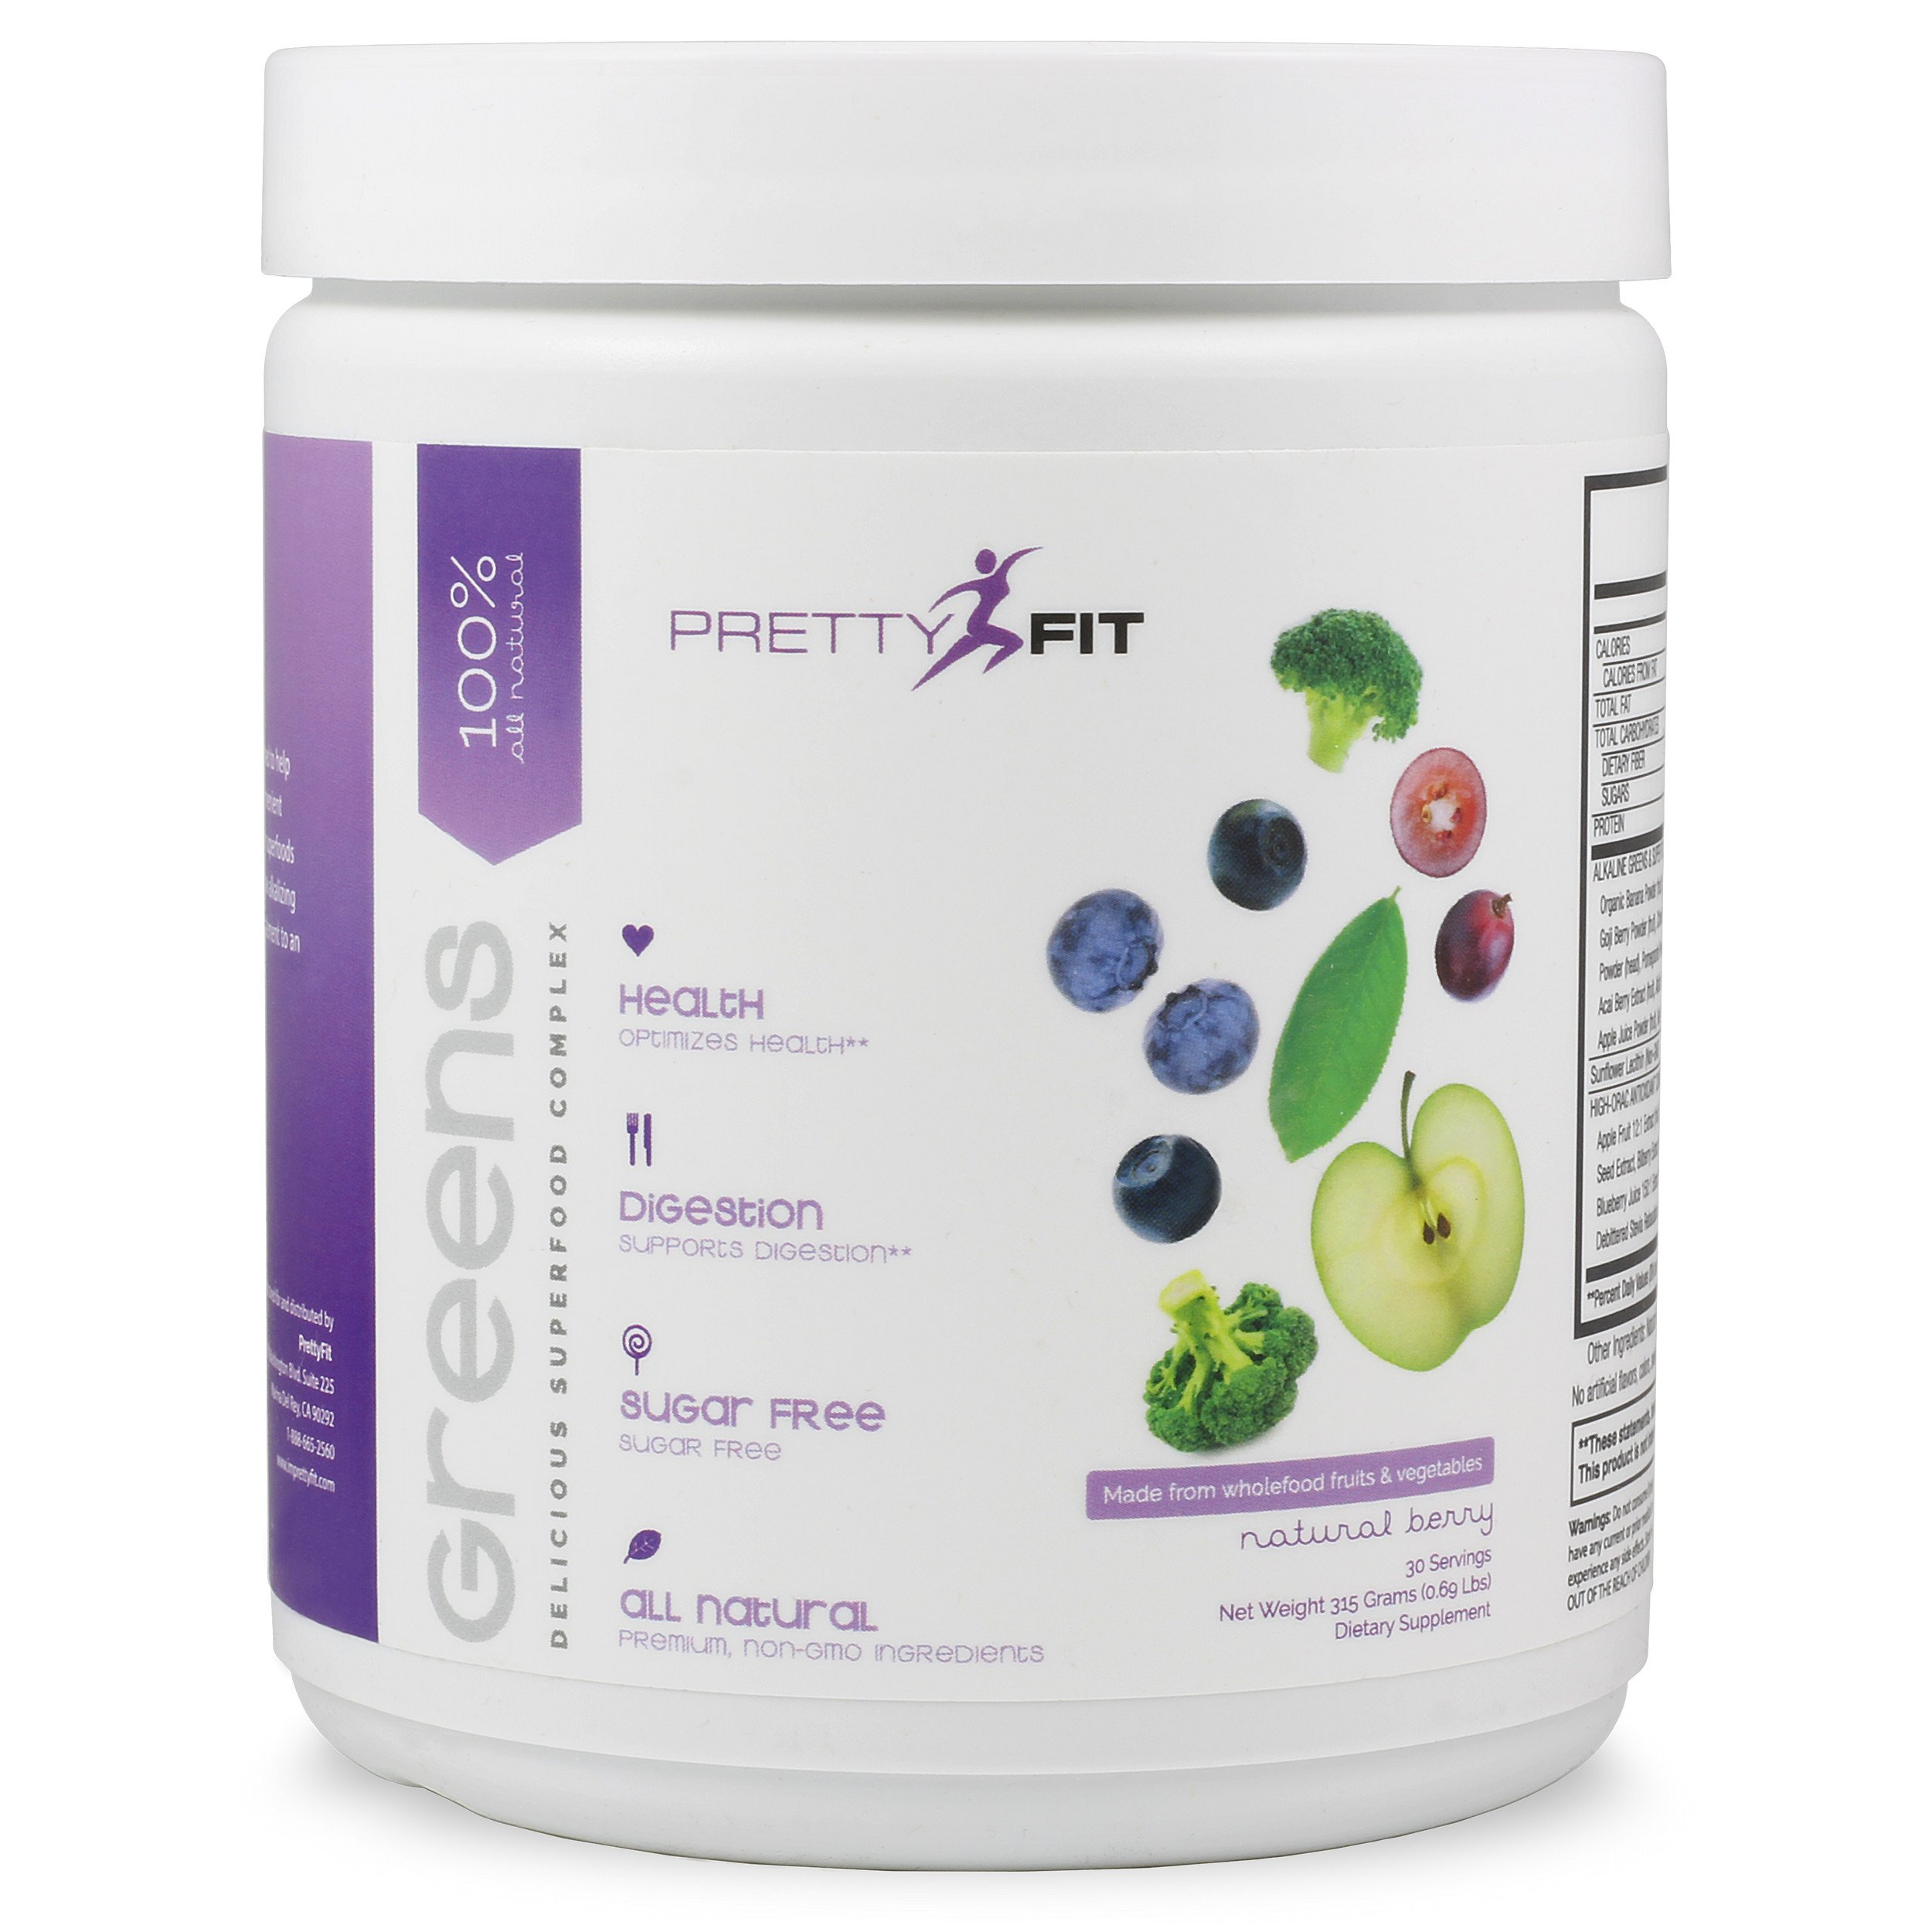 PrettyFit Greens - 30 Day Supply - Delicious Superfood Powder - Fruits & Vegetables, Probiotics, Adaptogenic Herbs, Antioxidants, Digestive Enzymes- Increase Energy, Improve Digestion & Immunities. Non-GMO